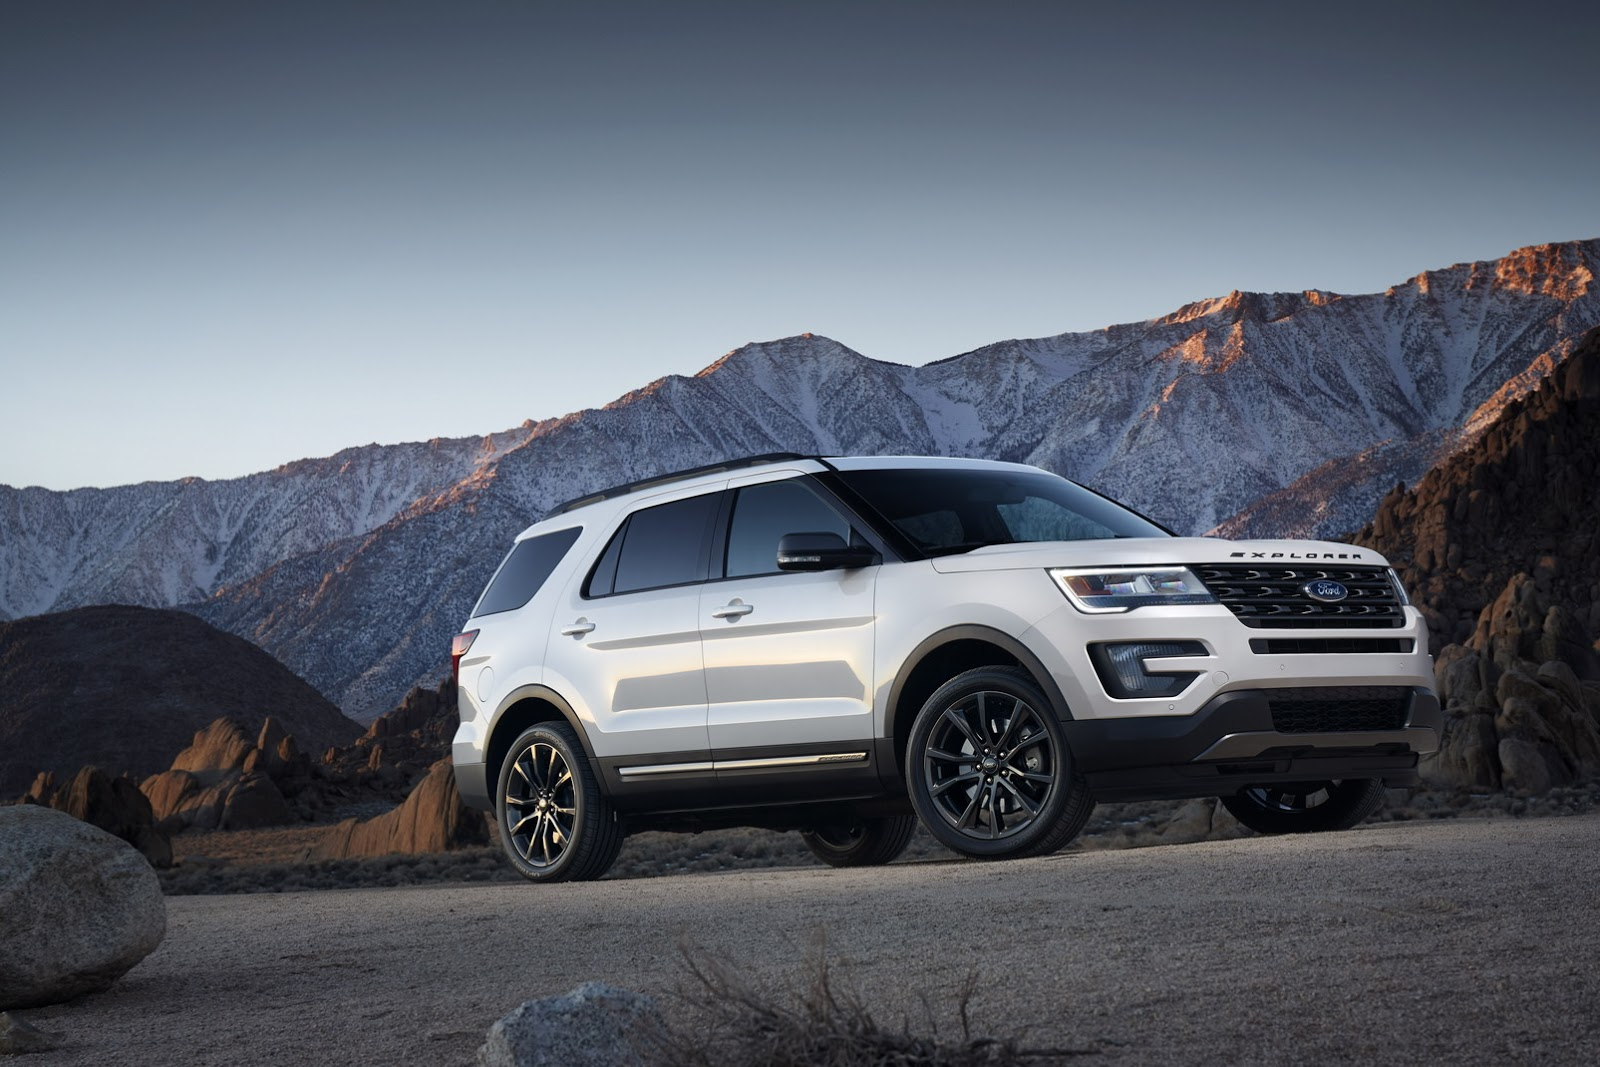 2017 ford explorer xlt sport appearance package revealed ahead of chicago debut autoevolution. Black Bedroom Furniture Sets. Home Design Ideas